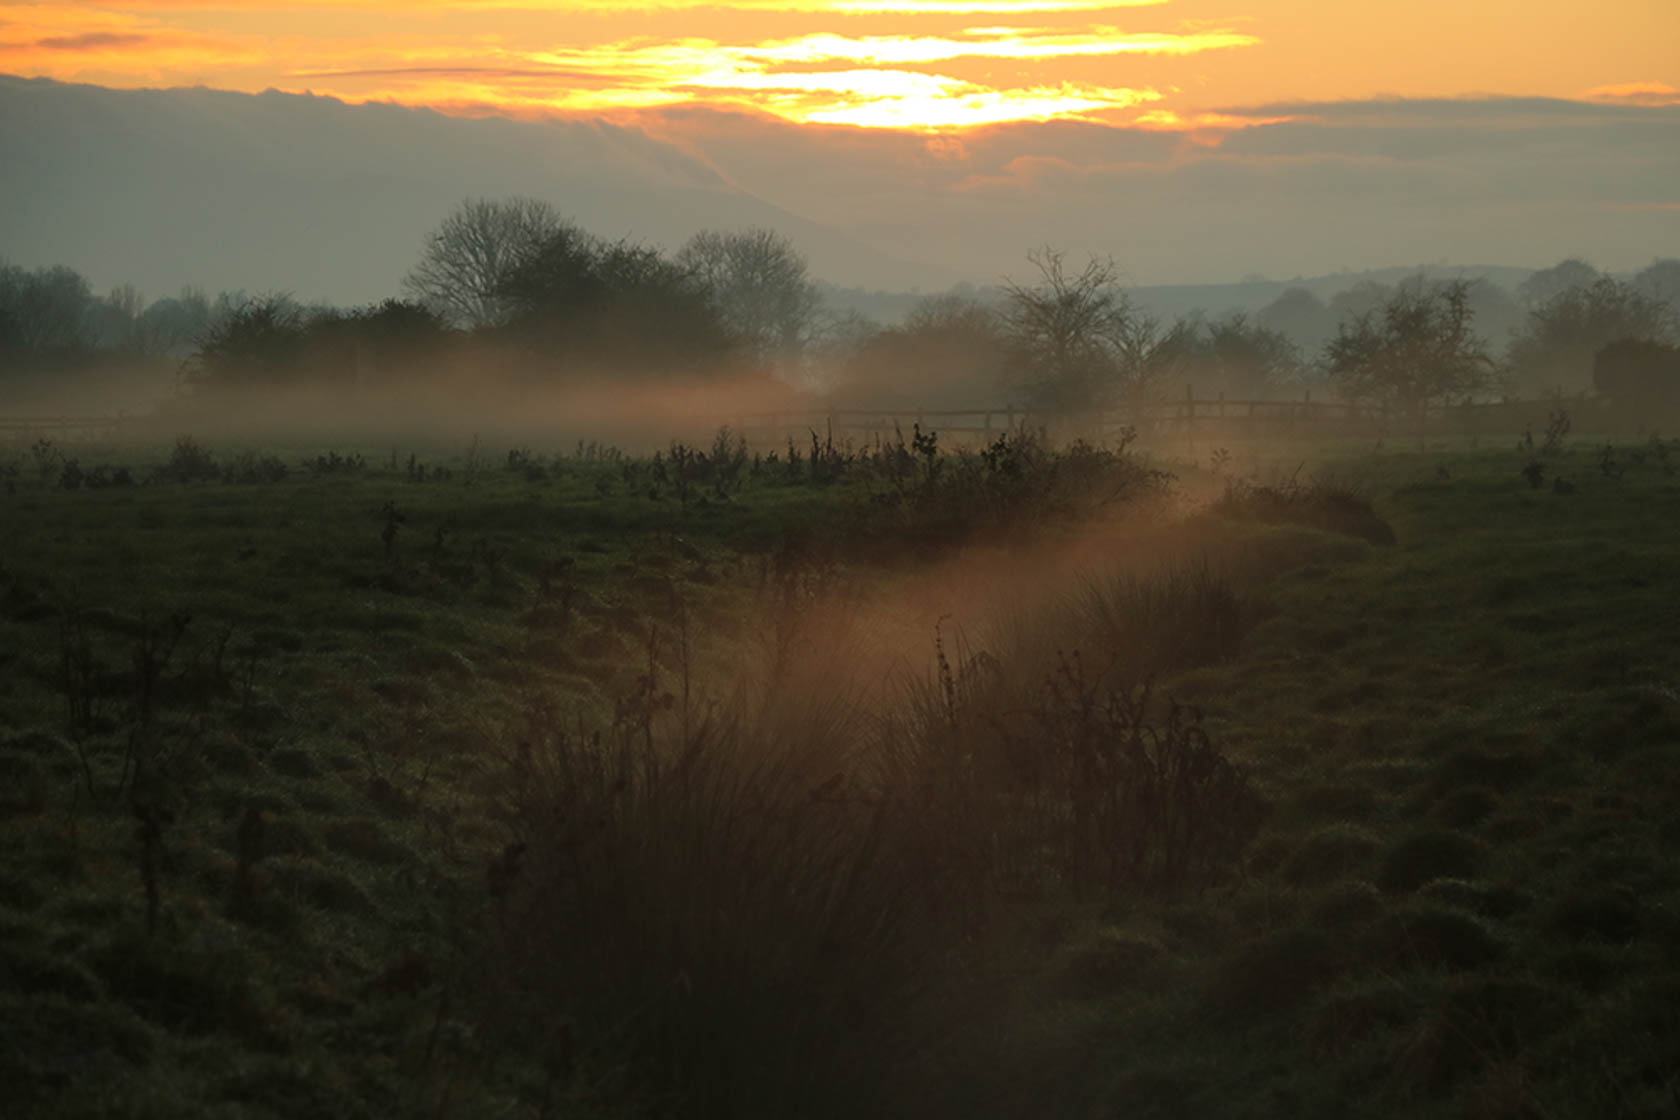 Sun rising over a field taken with the Canon EOS 750D digital SLR camera